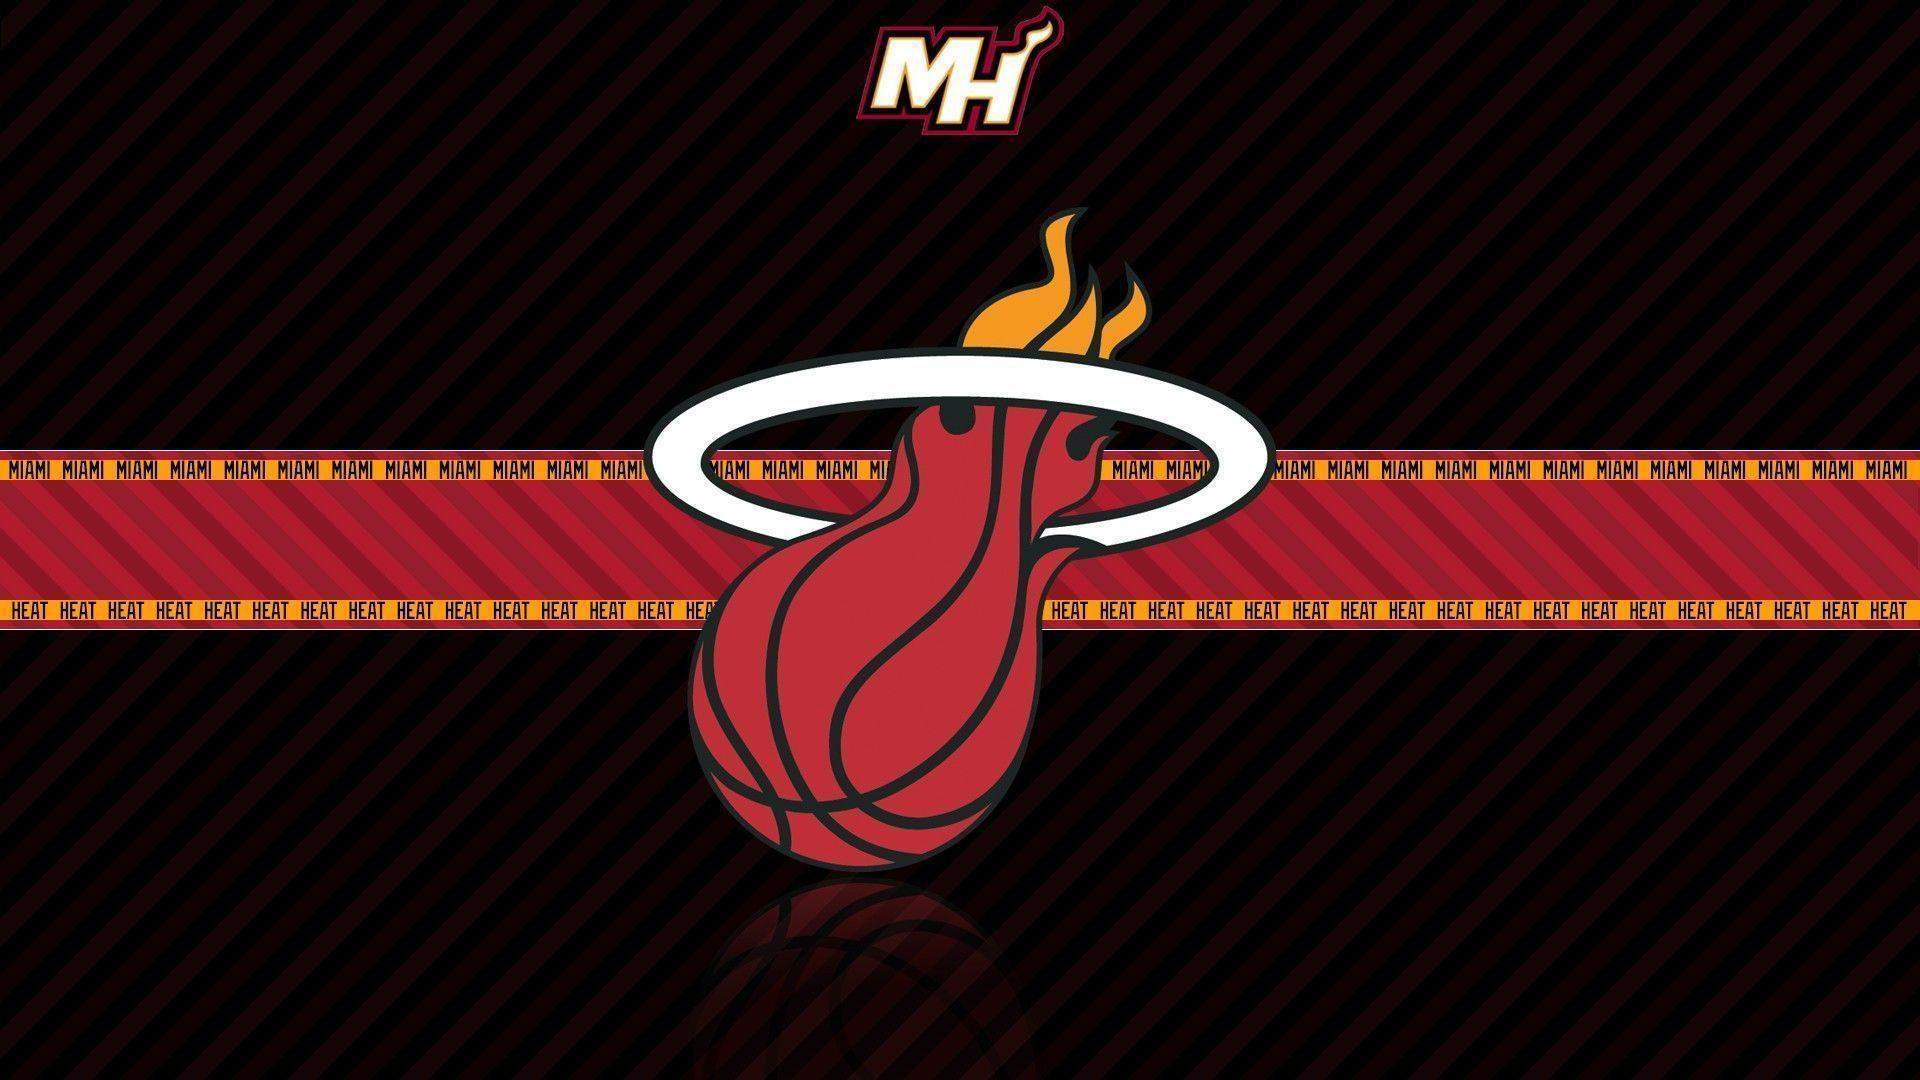 Miami Heat Logo Wallpapers 2015 - Wallpaper Cave